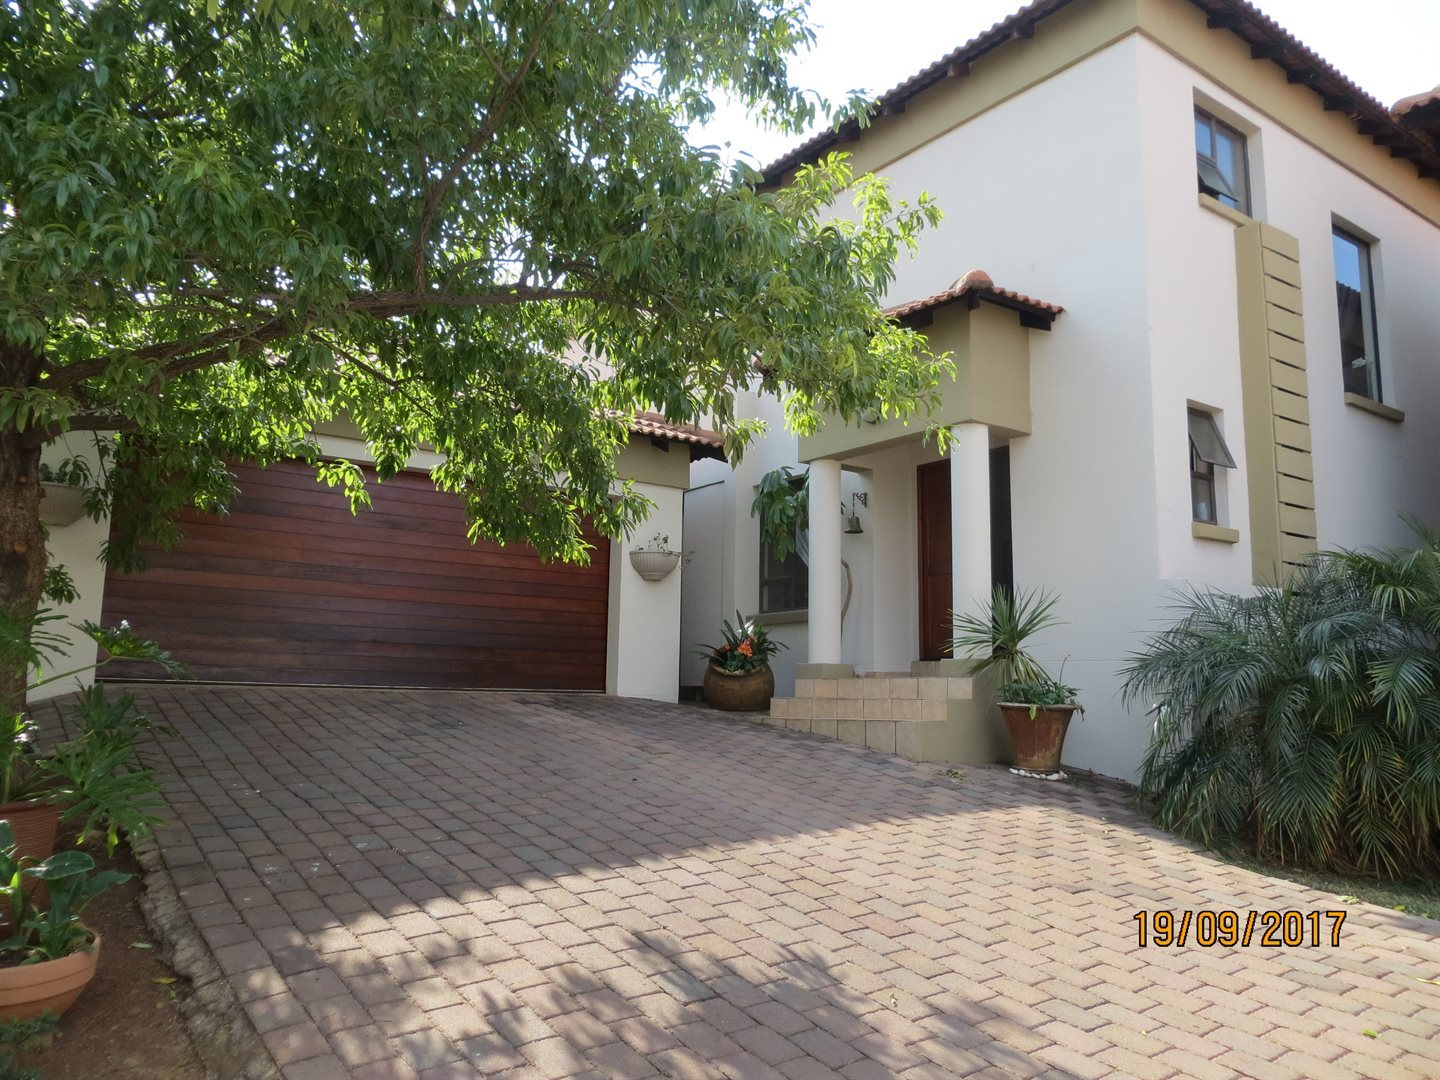 Centurion, Irene View Estate Property  | Houses For Sale Irene View Estate, Irene View Estate, House 3 bedrooms property for sale Price:2,350,000